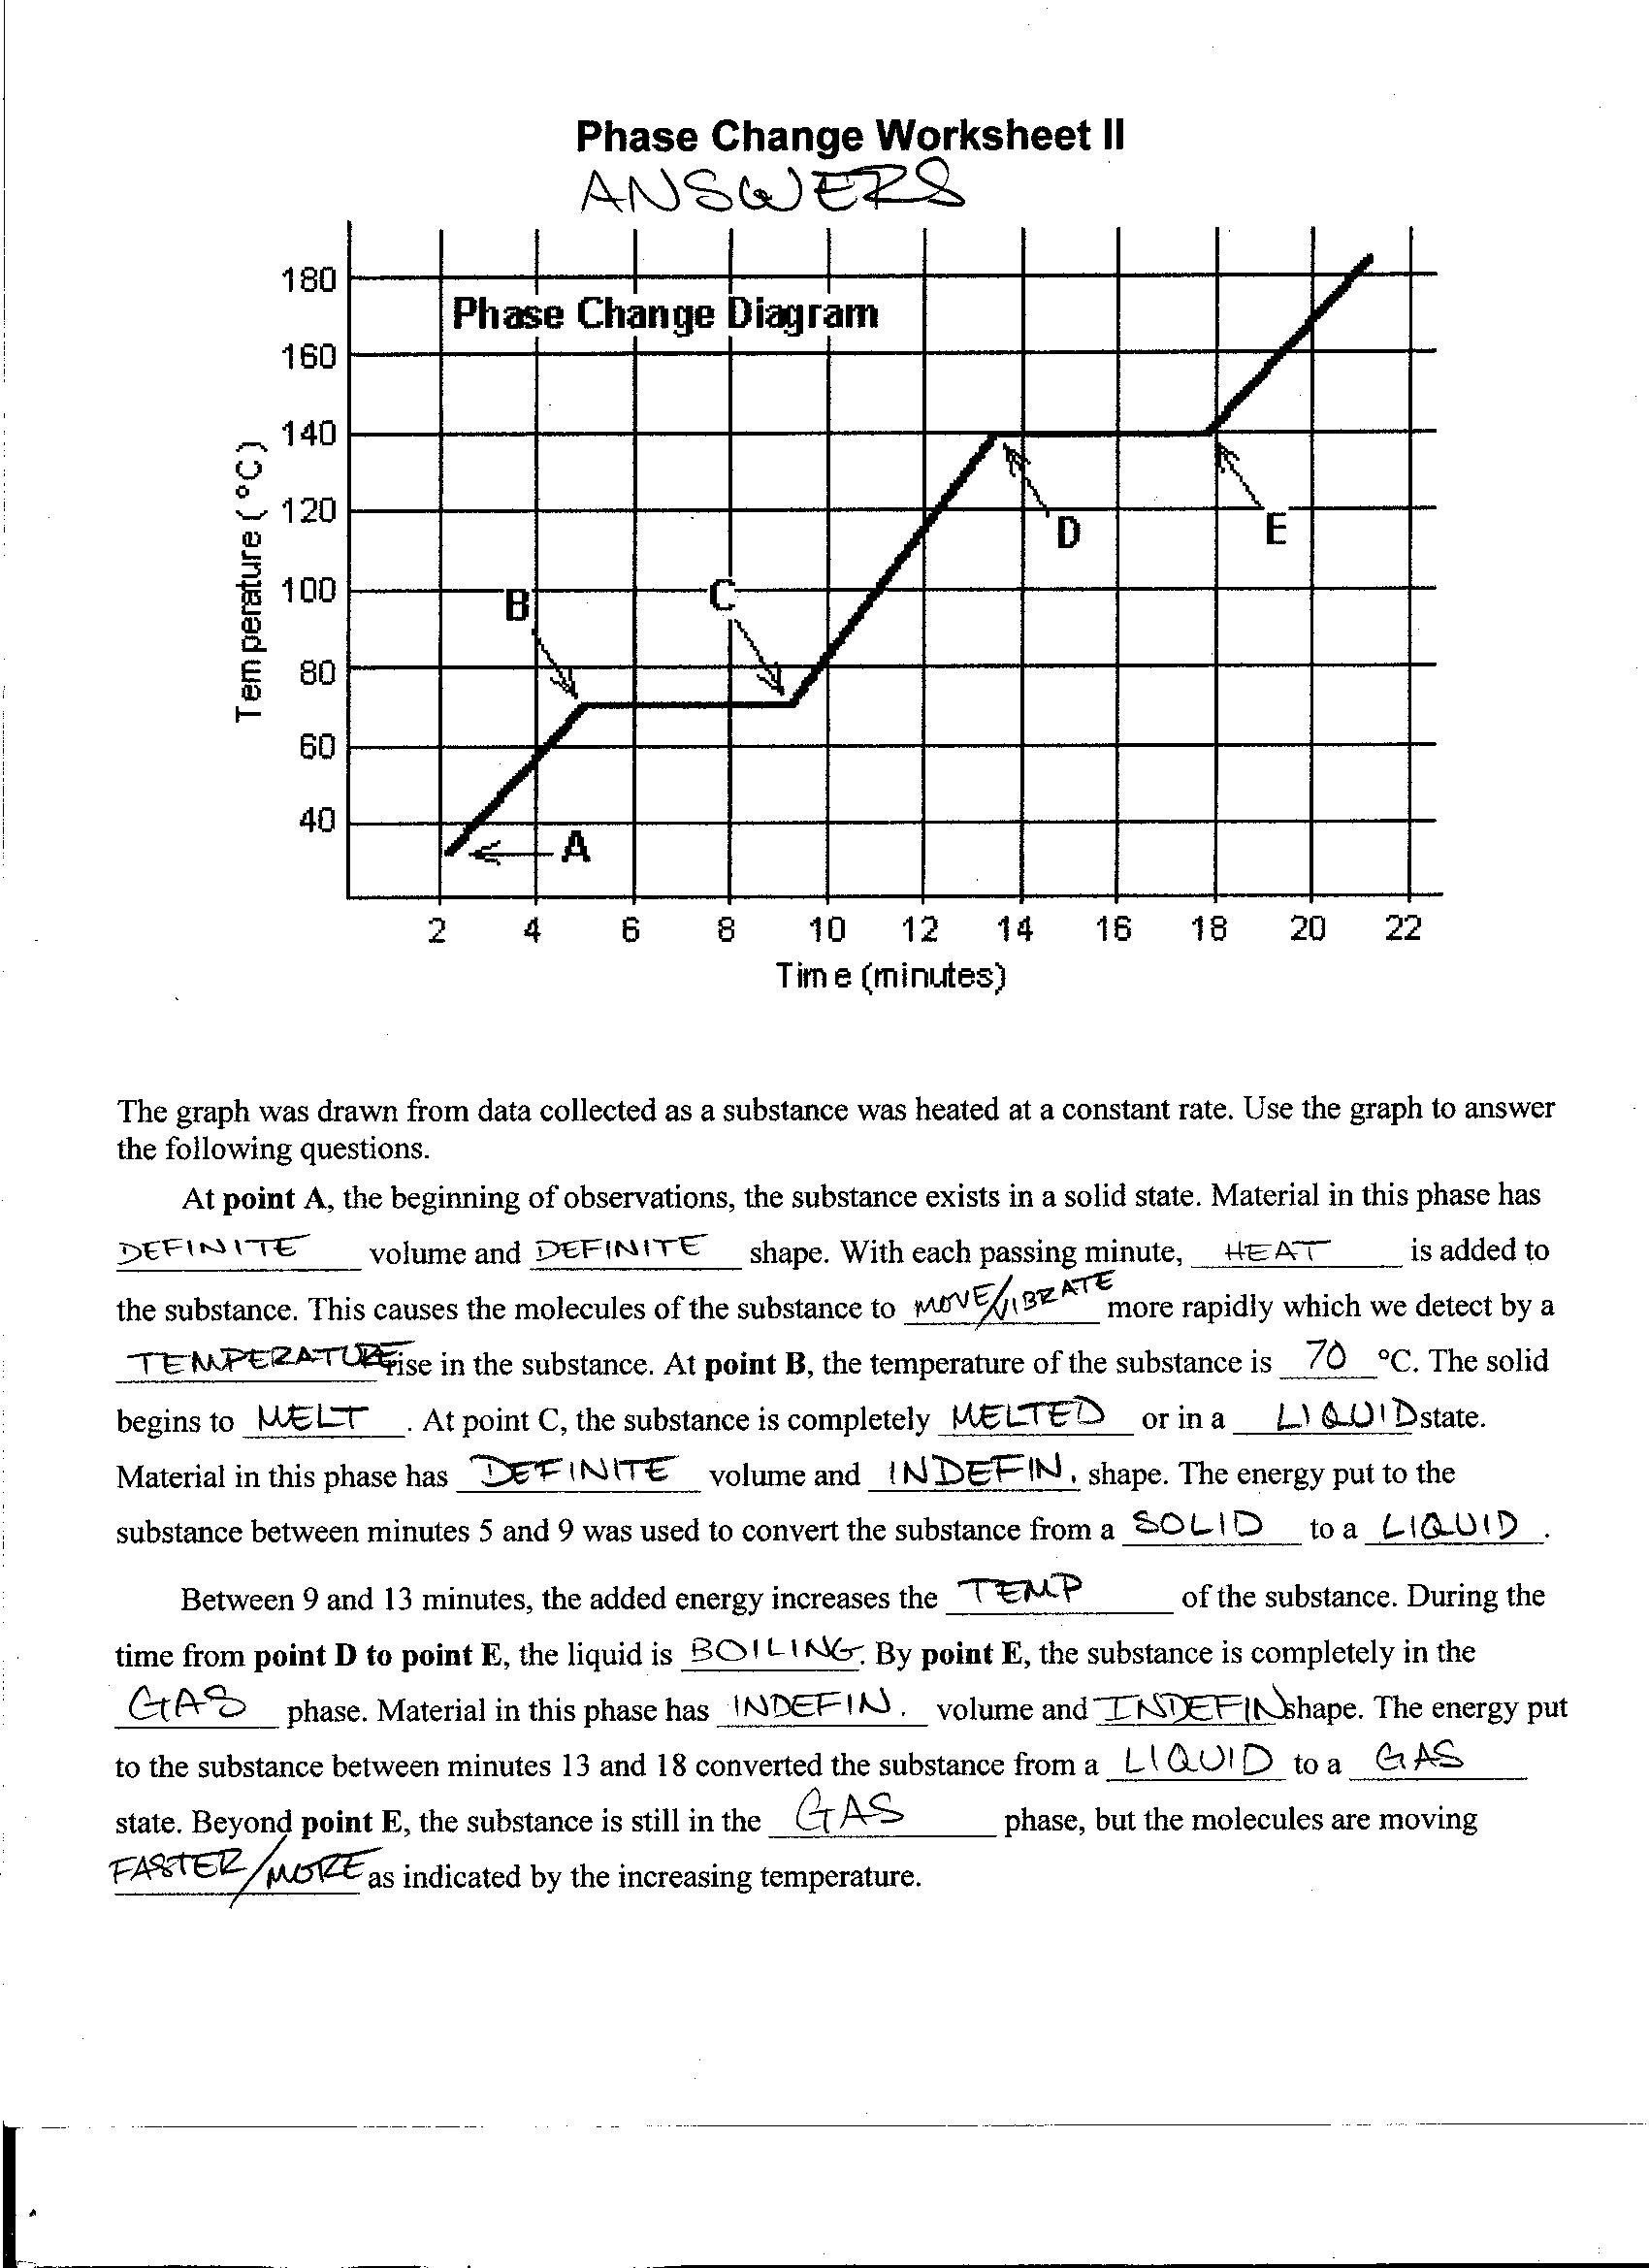 Phase Change Worksheet With Answers Free Worksheets Library – Phase Change Worksheet Answers